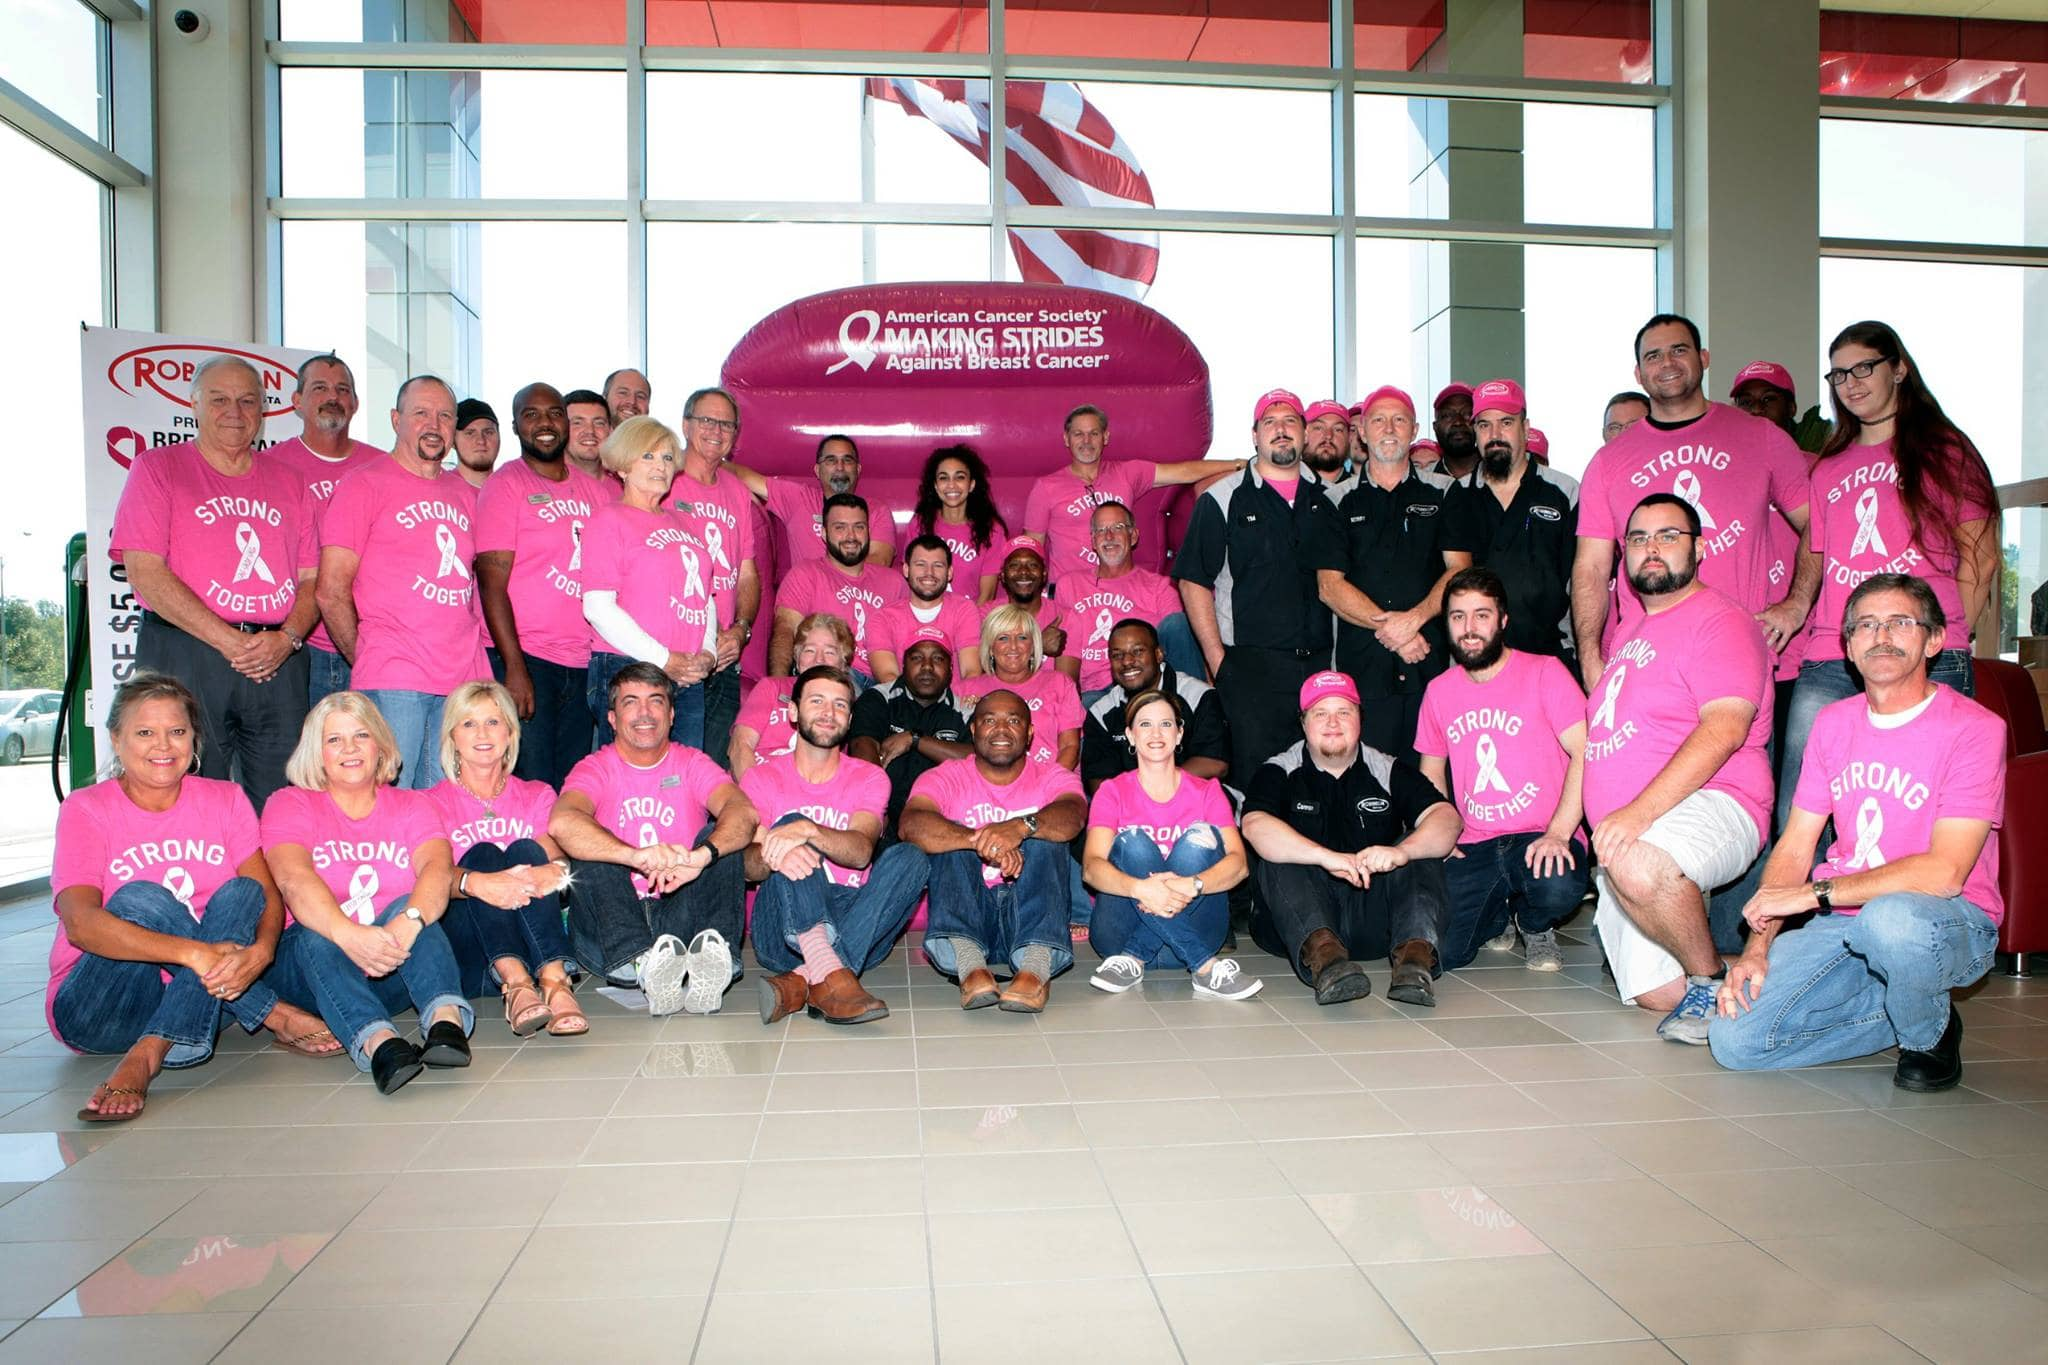 Robinson Toyota is Help Making Strides Against Breast Cancer!